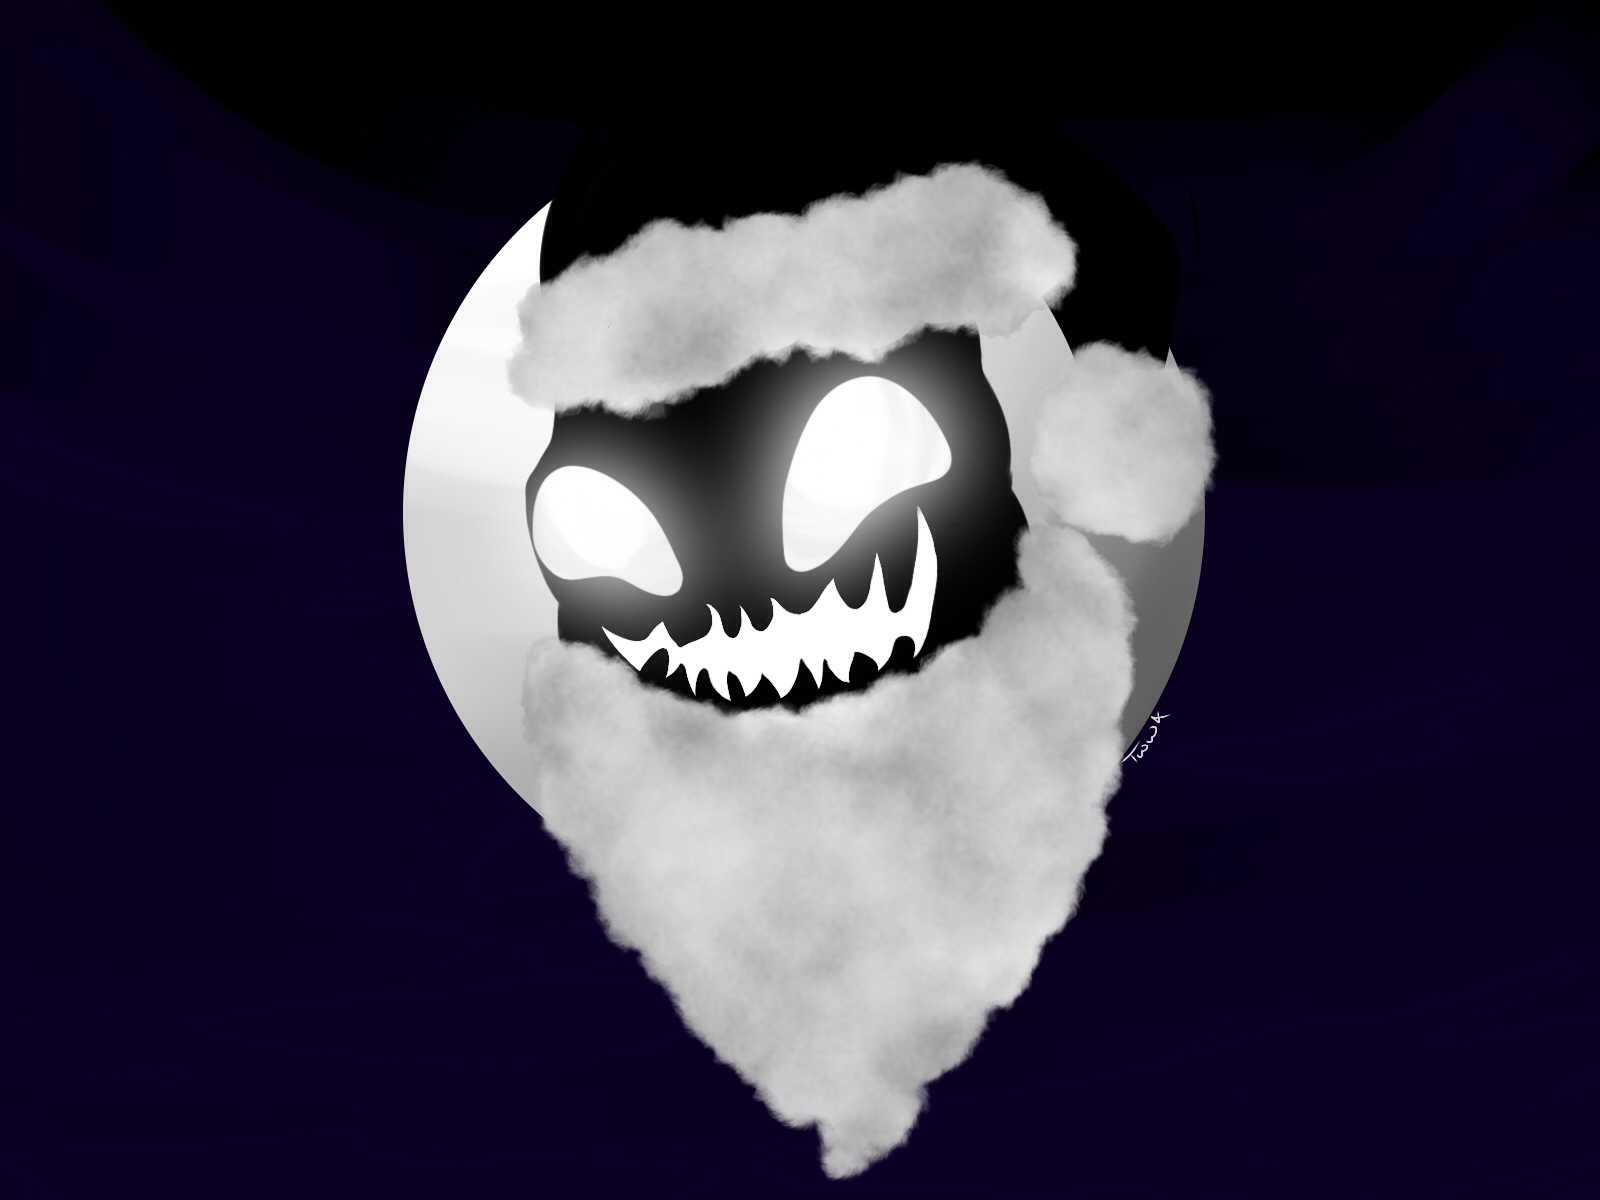 Oogie Boogie moon entry by TheWhiteWolf12121 on Newgrounds